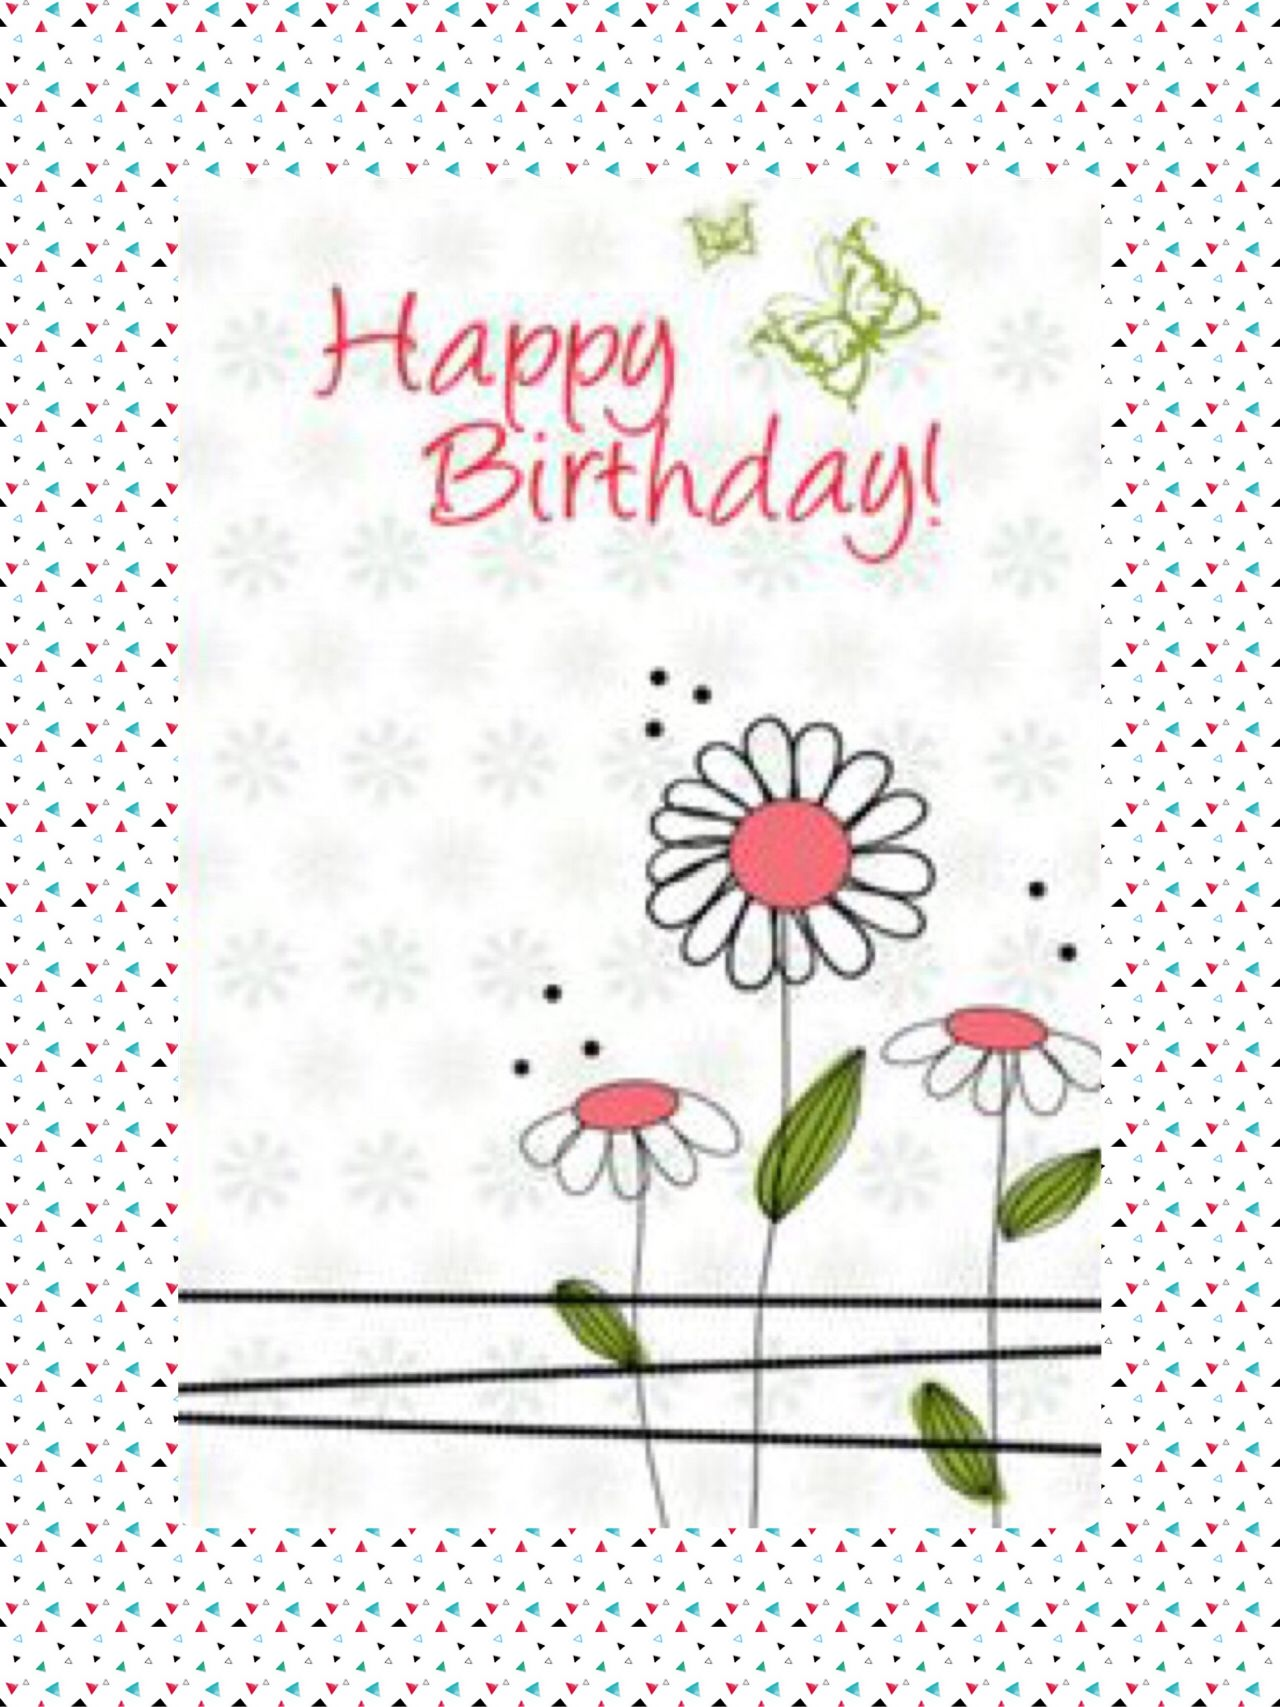 Pin by grammie newman on birthday pinterest happy birthday birthday sayings birthday greetings happy birthday phone messages birthday celebration congratulations quotations celebrations clip art kristyandbryce Choice Image